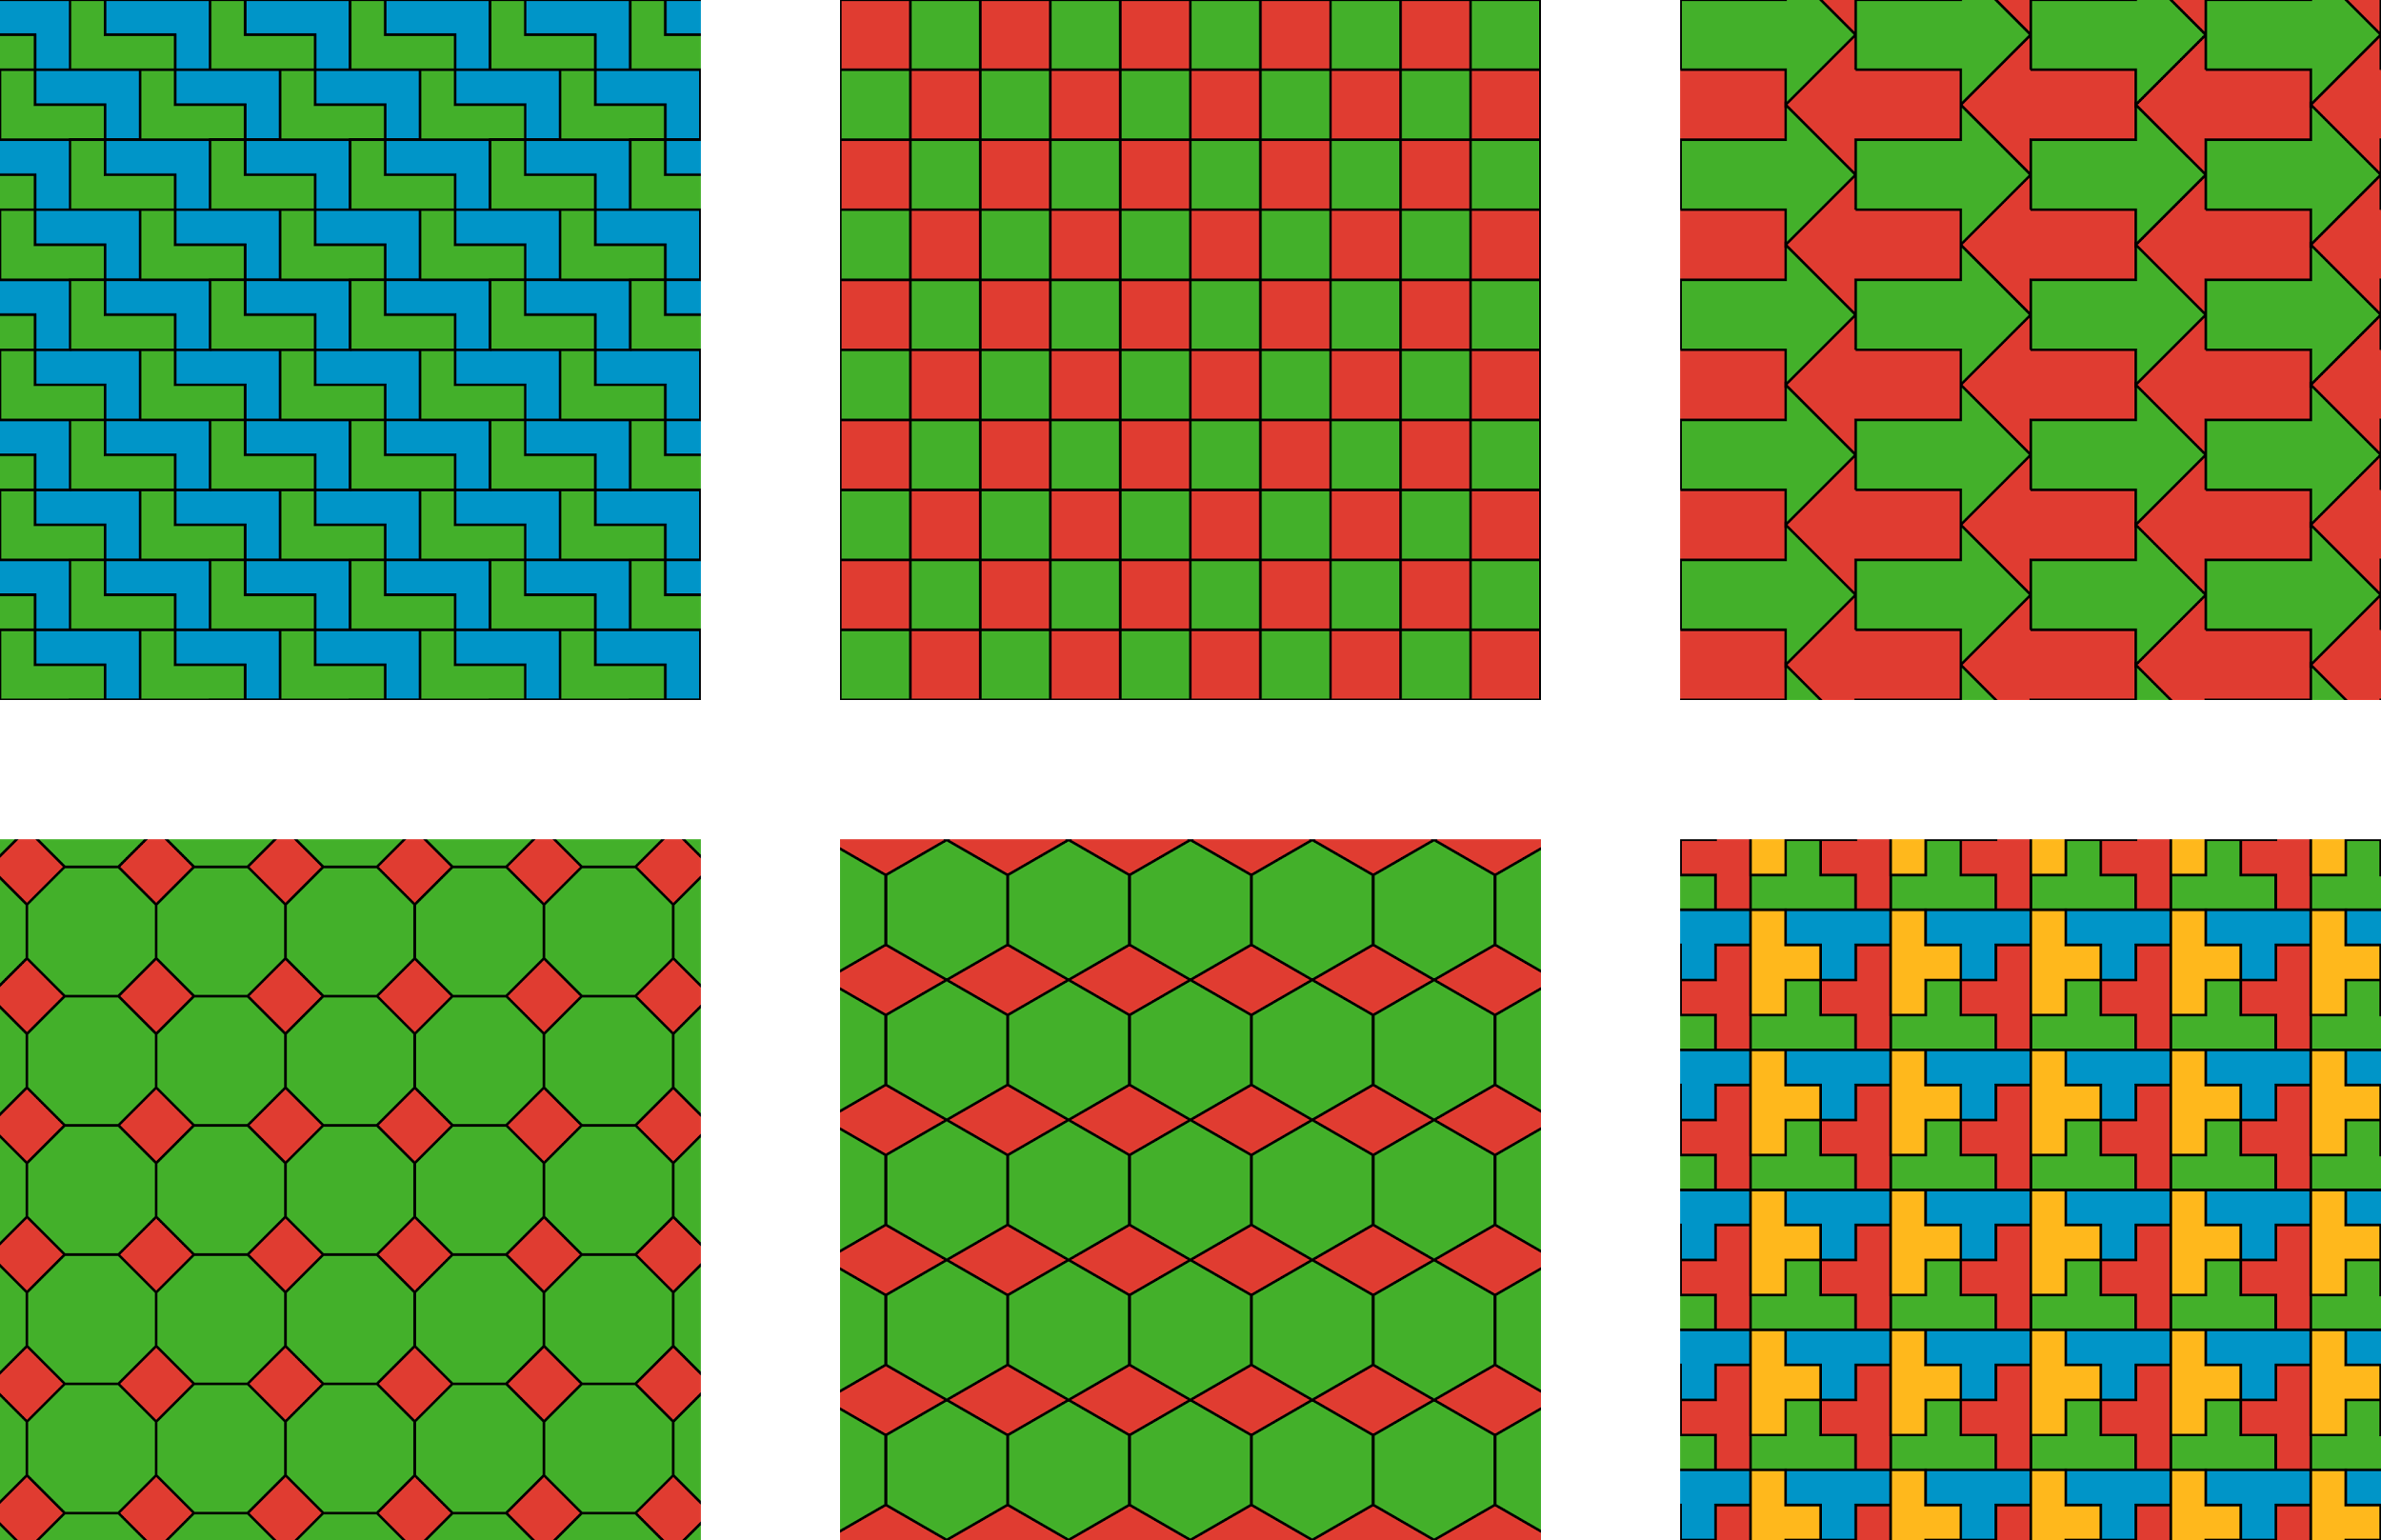 Six squares with patterns.   The first square shows green and blue L shaped polygons, stacked on top of each other to create a rectangle. The green and blue rectangles create diagonal lines.   The second square has 10 rows of red and green alternating square tiles. The first row begins with a red tile and ends with a green tile. The second row begins with a green tile and ends with a red tile. The first and second row repeat for 10 rows.  The third square has 10 rows of green and red arrows. The green arrows points to the right. The red arrows point to the left. Odd rows have green arrows. Even rows have red arrows.  The fourth square has small green tiles with small red rhombuses at the corners of each square tile. There are 25 full green square tiles and 36 red rhombuses. The small red rhombuses are smaller than the green tiles, and do not touch each other.  The fifth square has small green tiles with red parallelograms at the corners. The center of the parallelogram is aligned with the edge of the square; the left and right point of each parallelogram hits the center of the squares on either side of the edge. The vertex of each red parallelogram touches the vertex of the next red parallelogram. There are 25 full green square tiles and 36 red parallelograms.  The sixth square has 16 full small square tiles and a border of 20 partial tiles. Each tile is comprised of 4 t shaped polygons, with the bottom point of each T facing into the center. The top left corner is a sideways yellow T. The top right corner is a blue T. The bottom right corner is a sideways red T. The bottom left corner is an upside down green T.